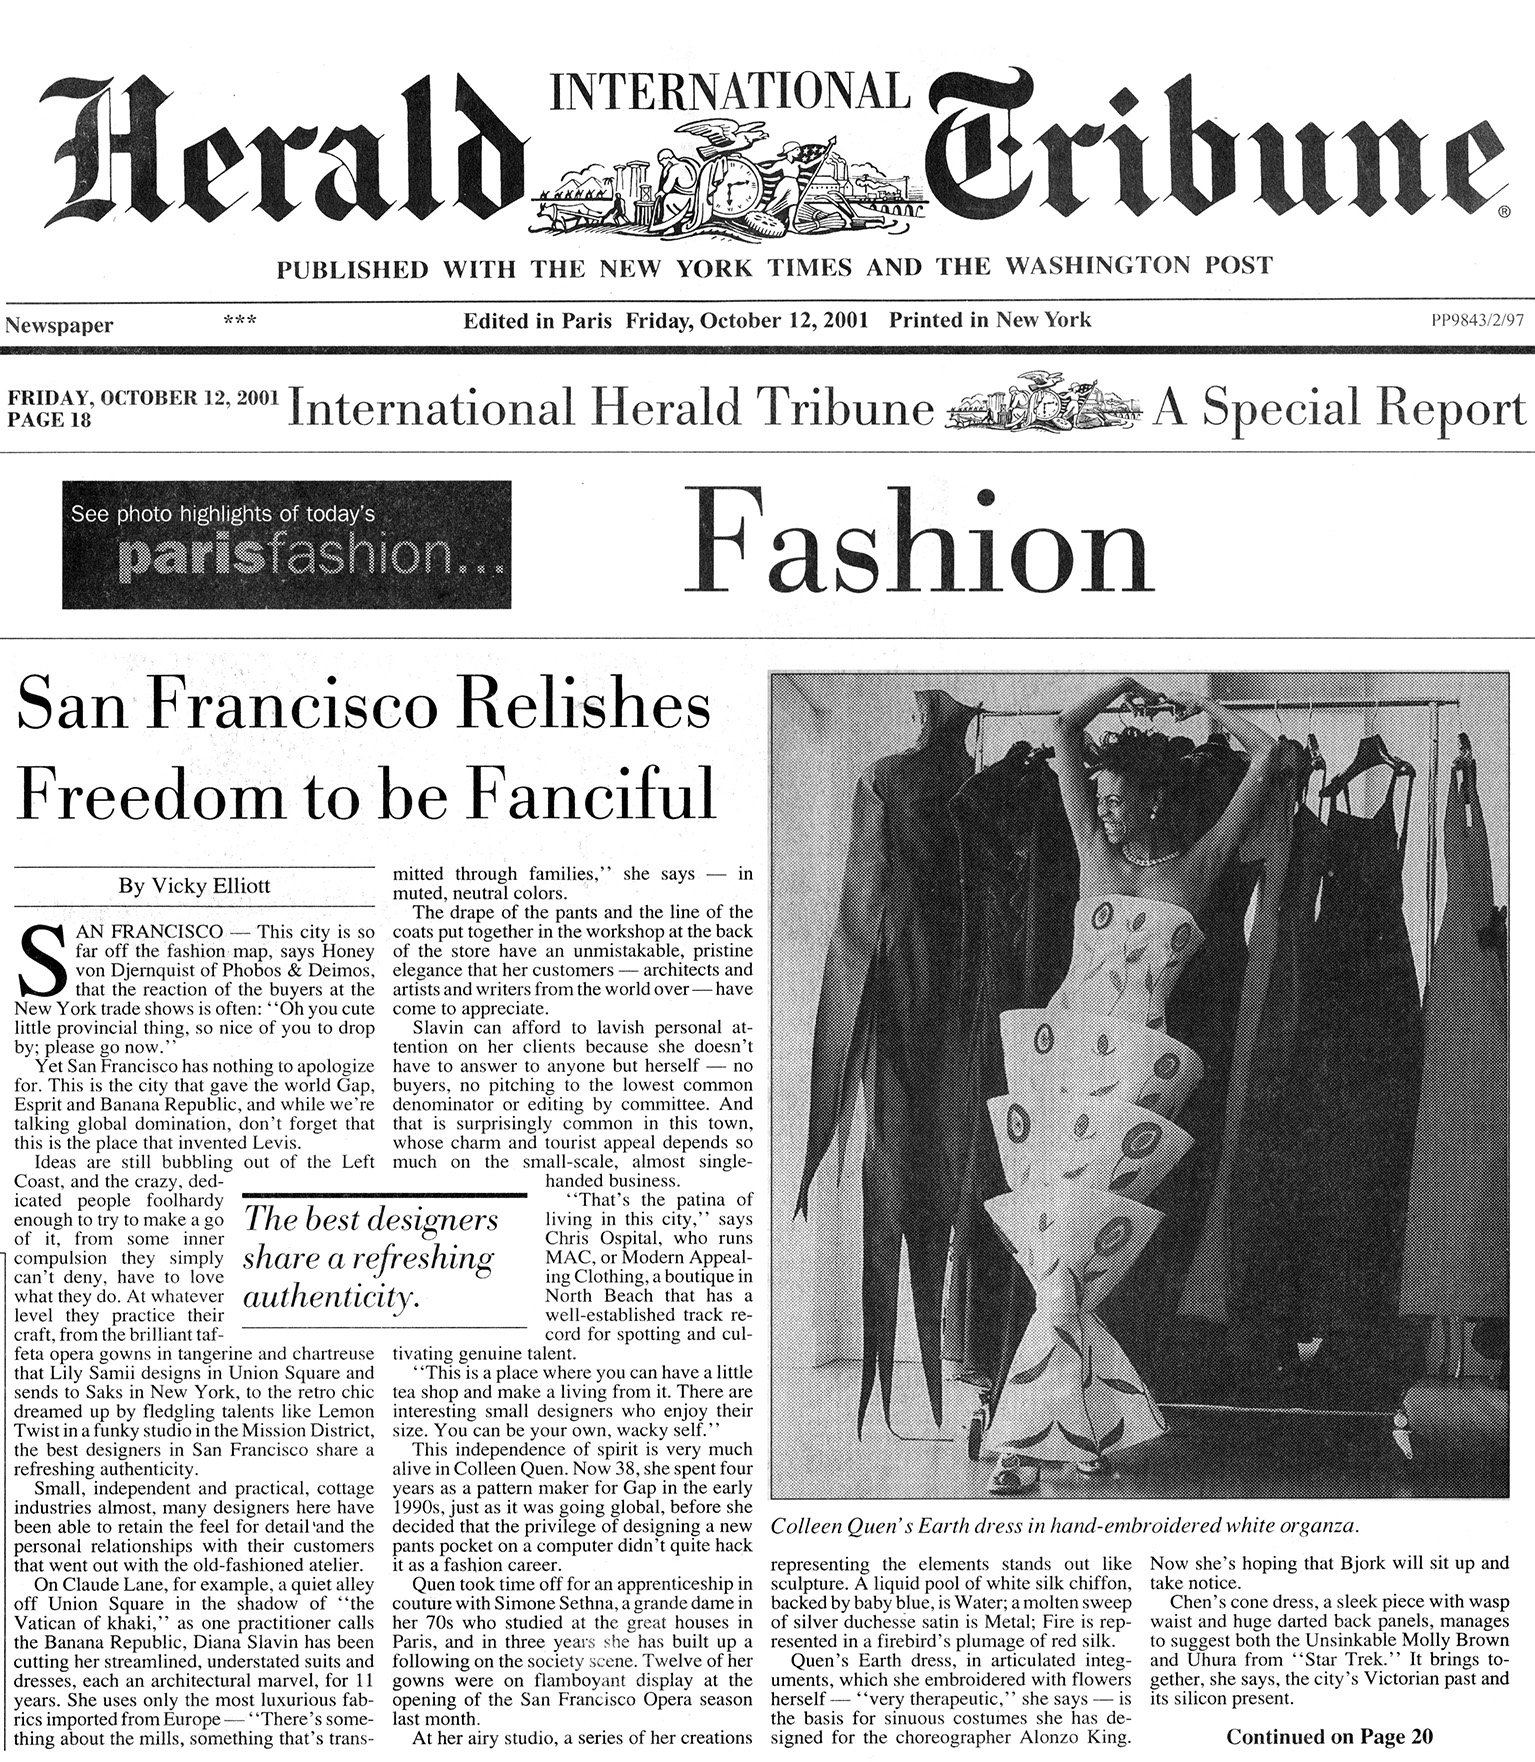 International Herald Tribune Oct 2001.jpg